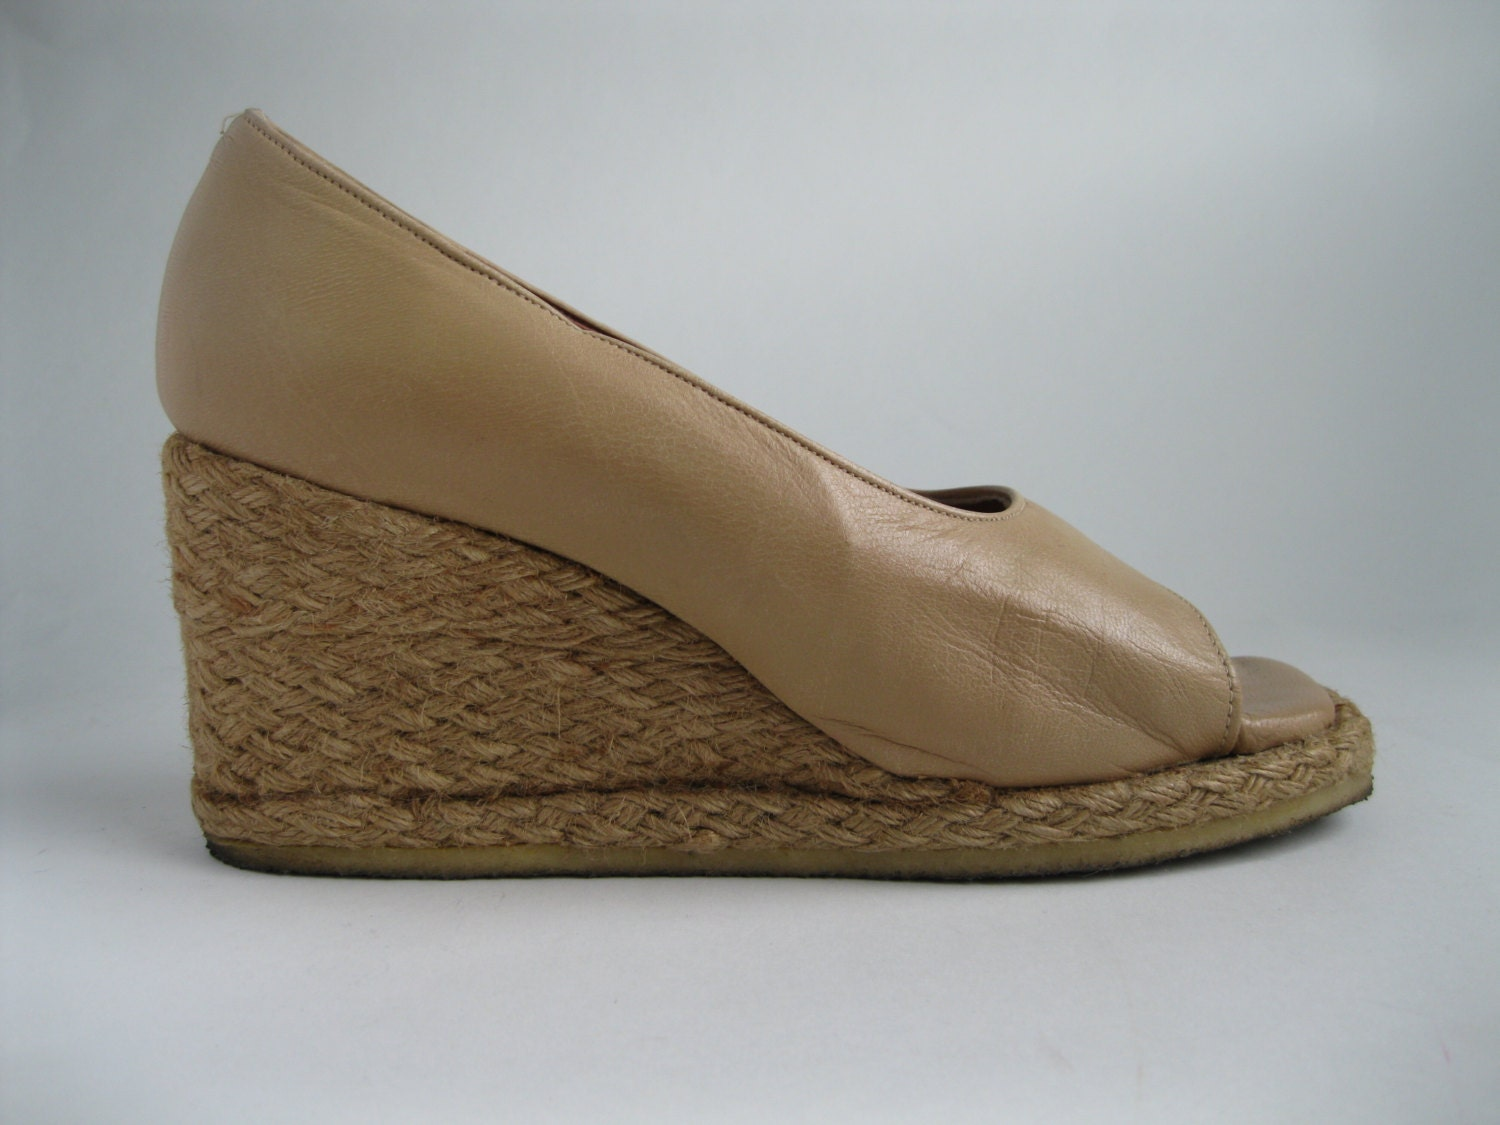 vintage 1970s wedge shoes neutral leather nautical by